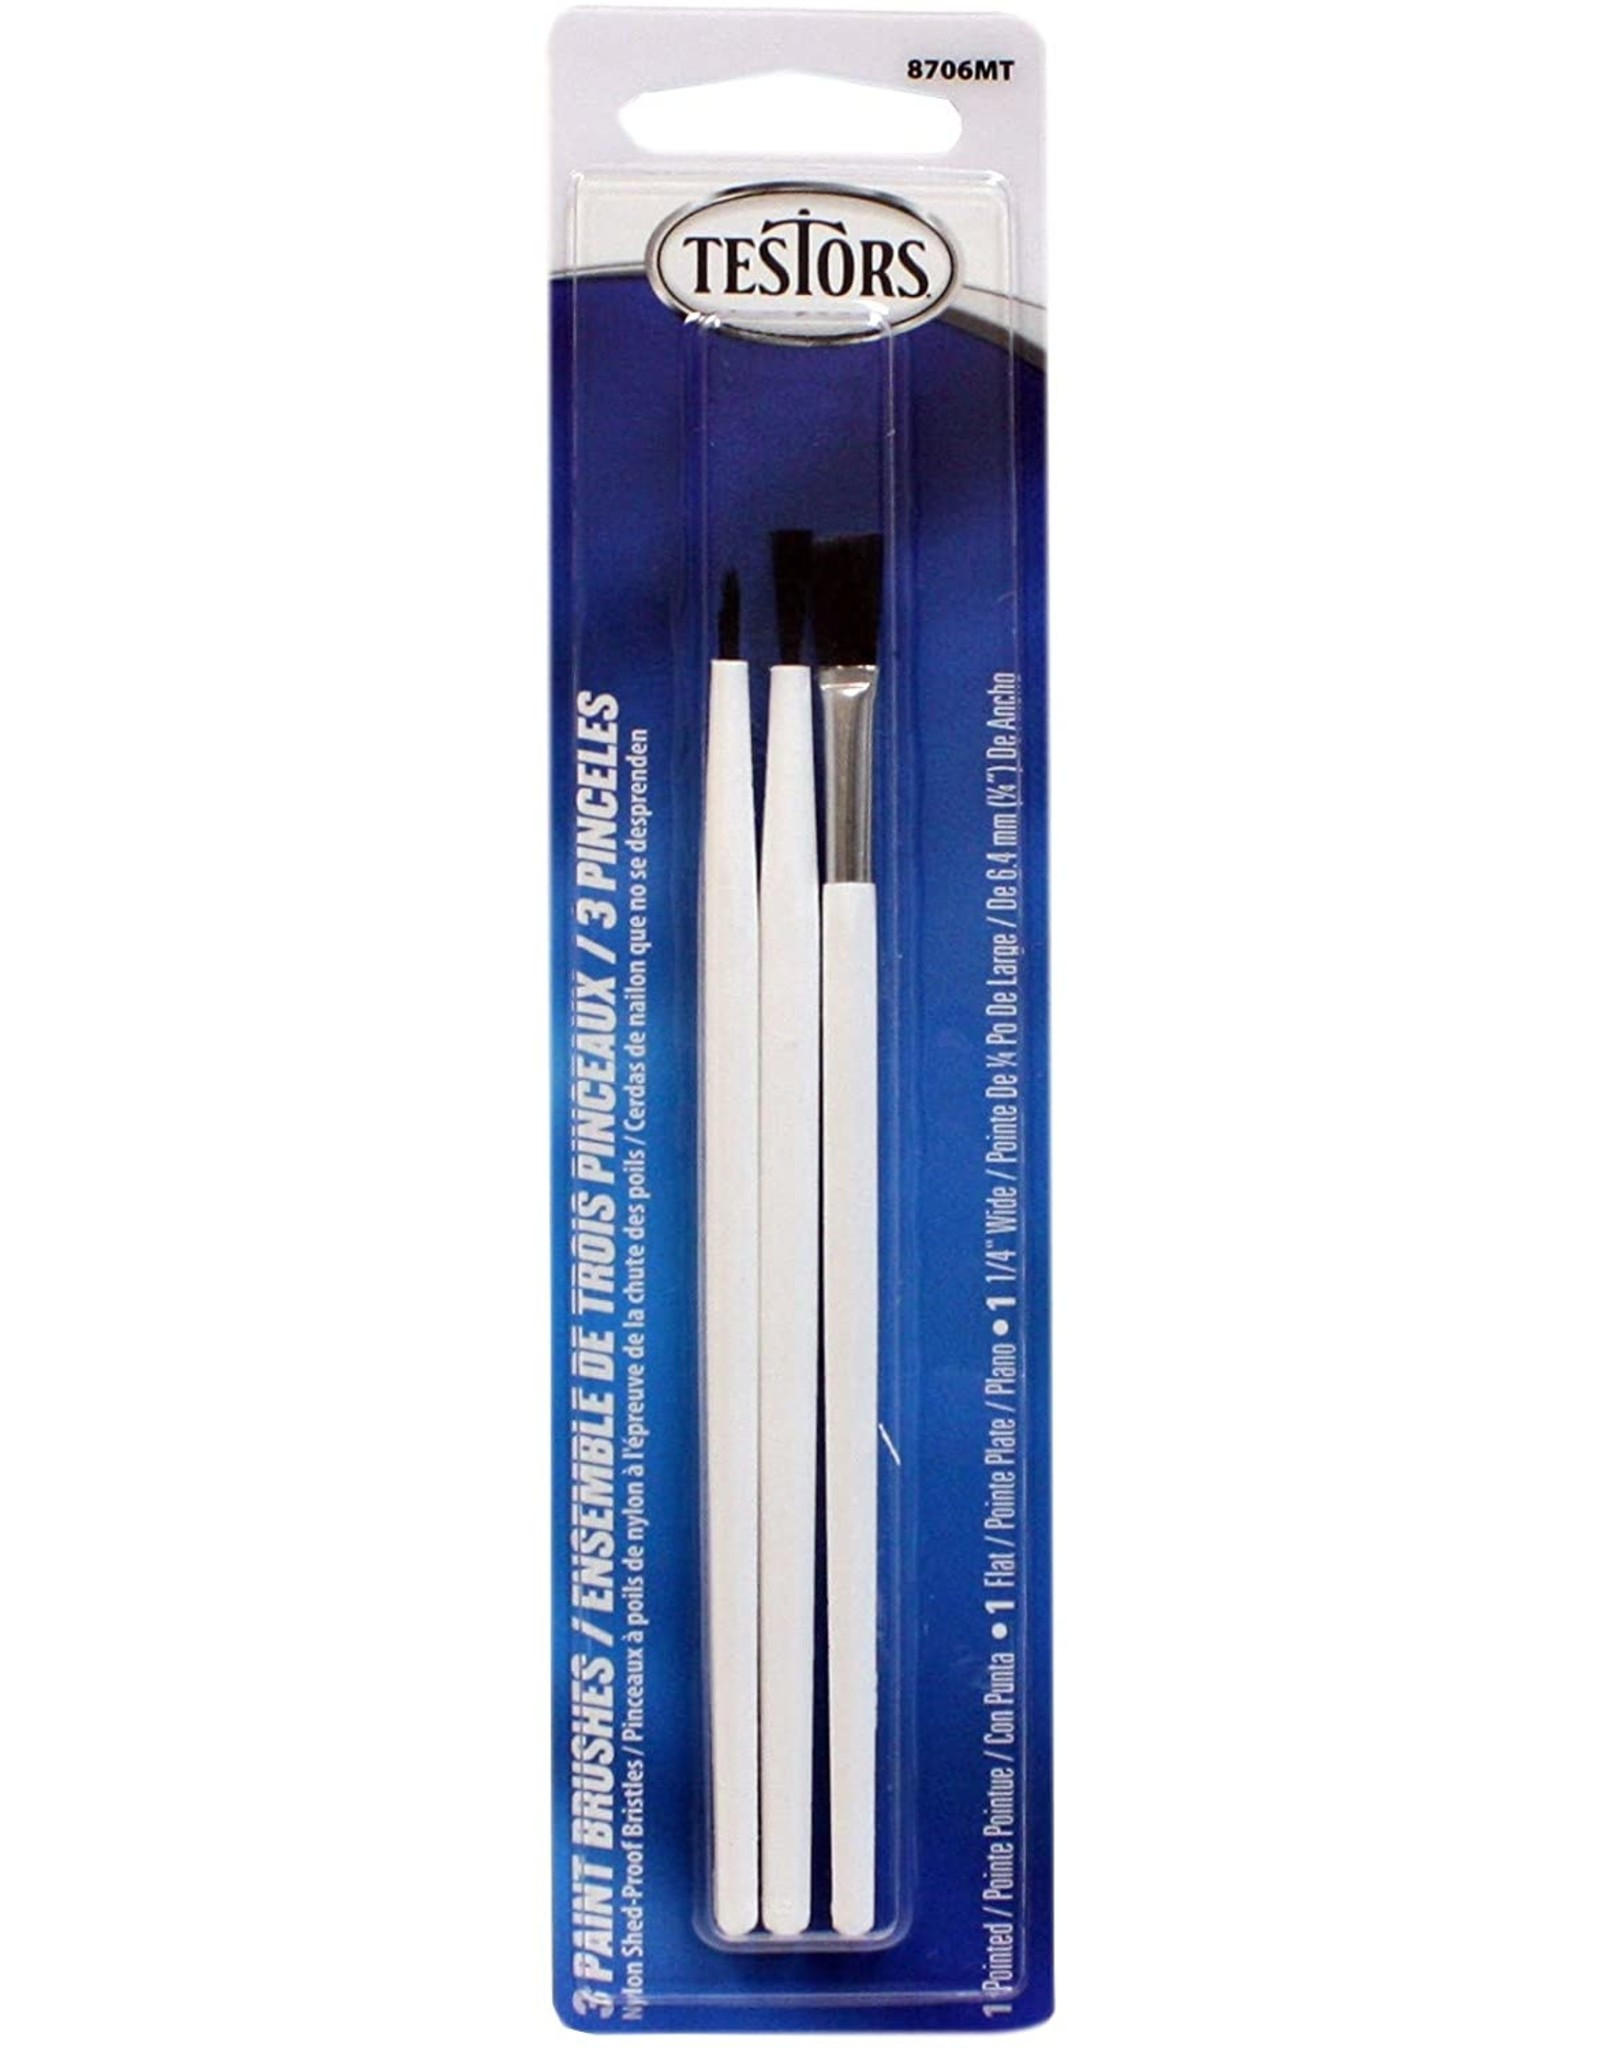 Testors 8706MT - 3 Piece Brush Set, Flat and Pointed